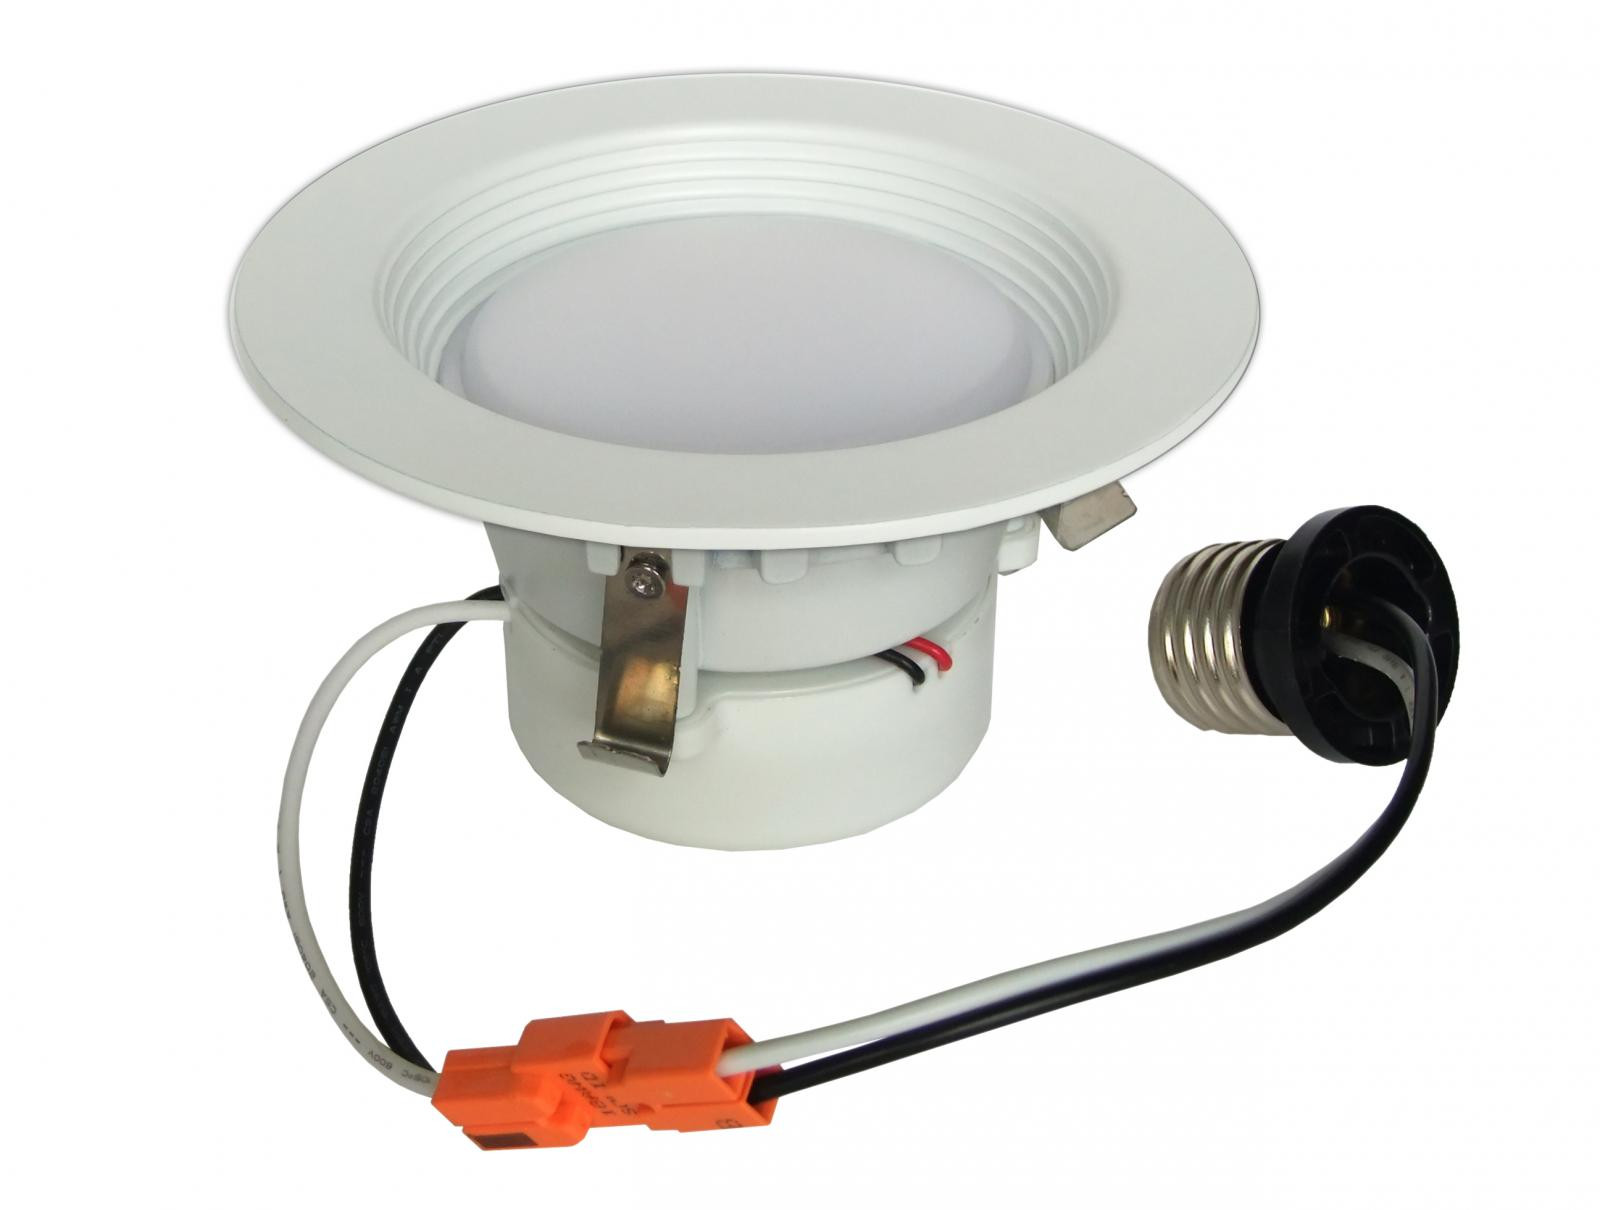 Best ideas about Recessed Lighting Led . Save or Pin 12 X DownLight Trim 13W LED Recessed Dimmable 4 Inch Now.